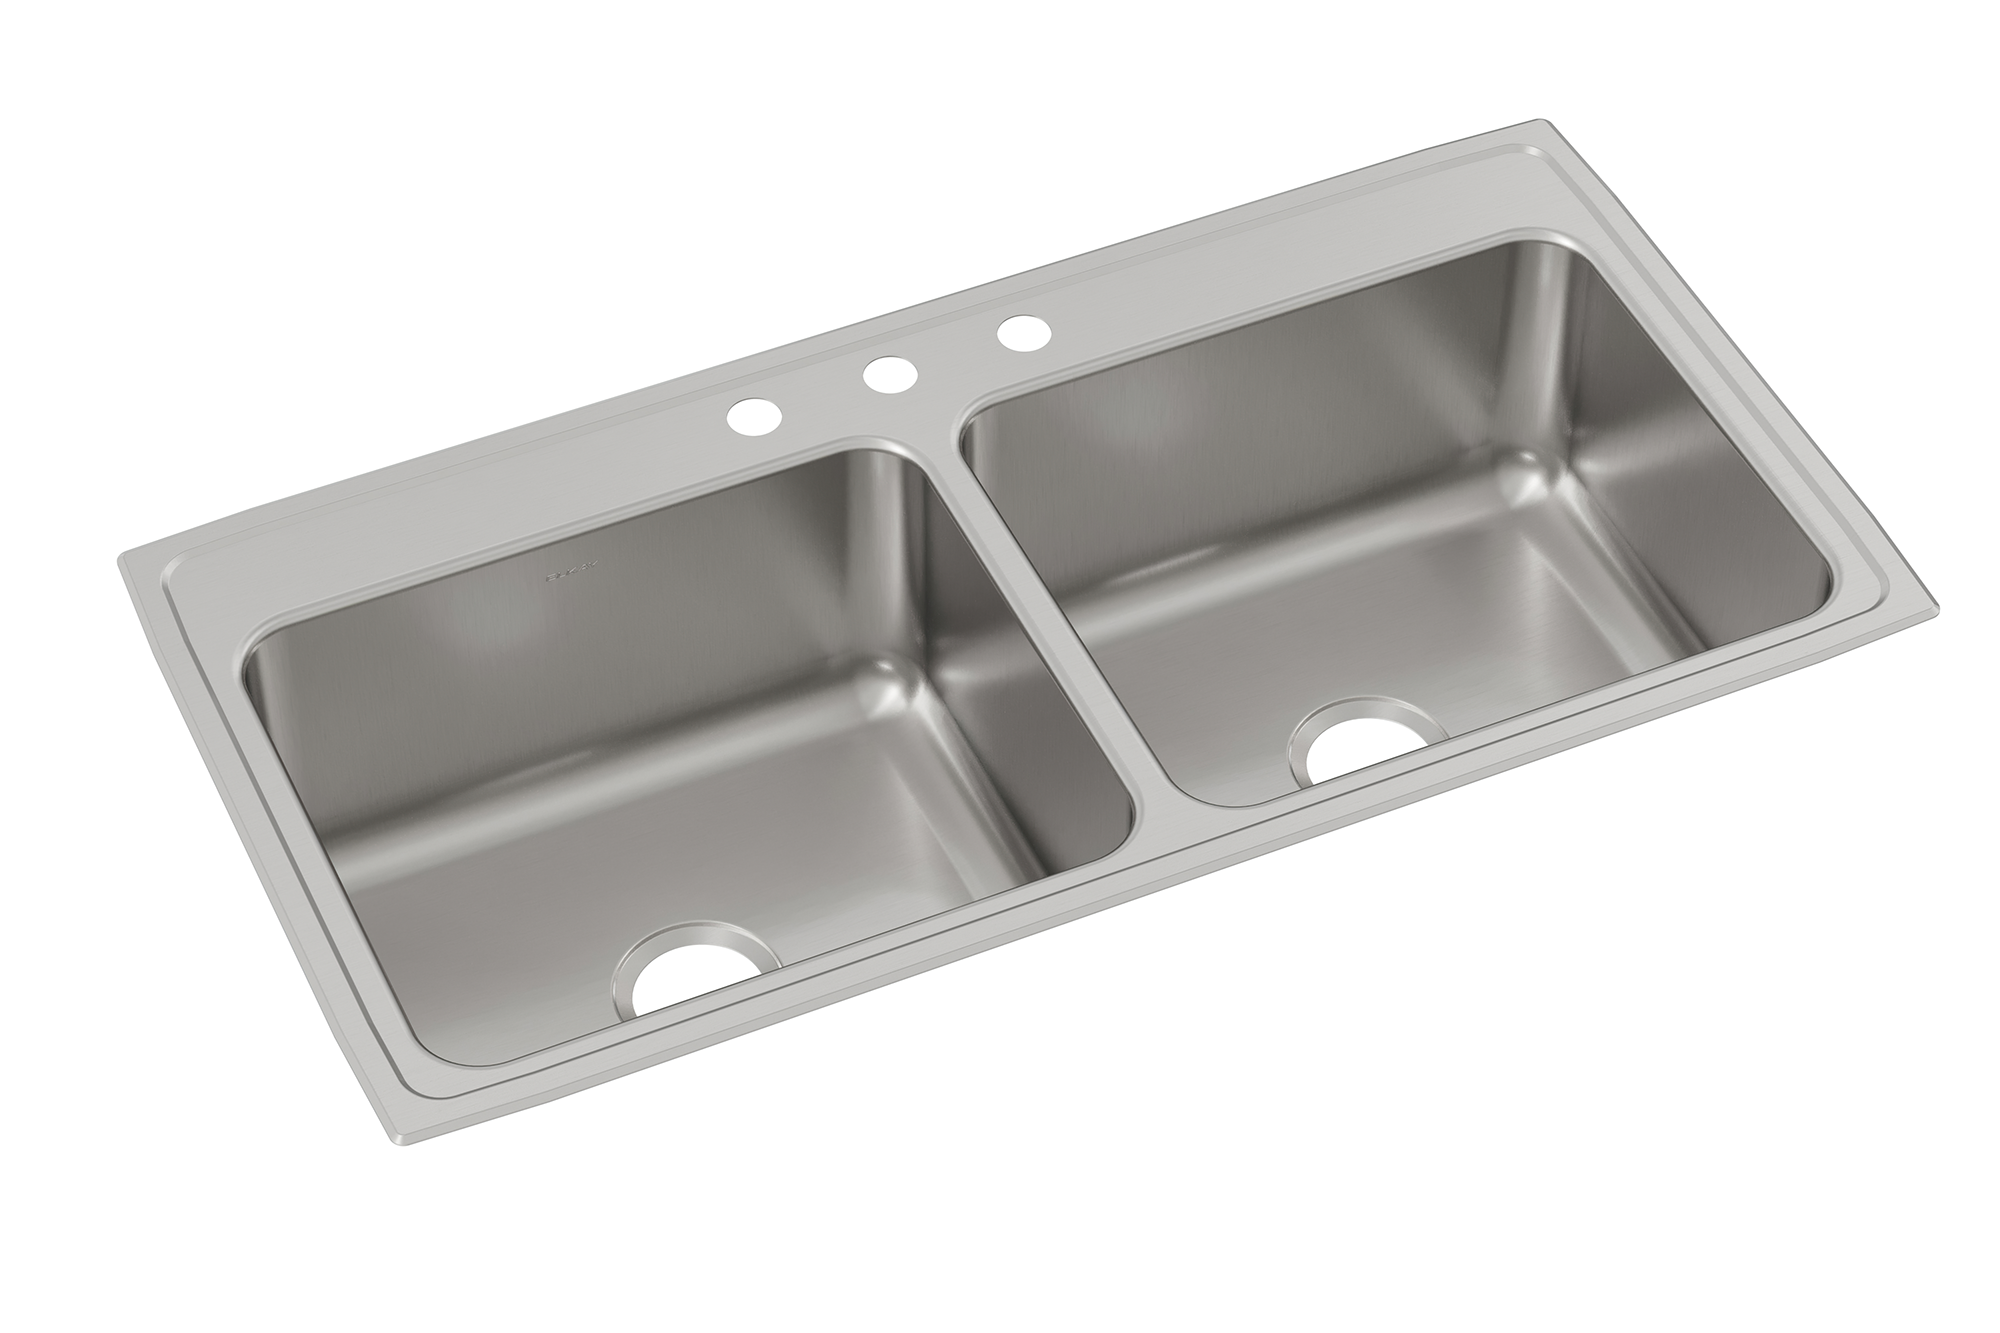 Elkay Lustertone Classic Stainless Steel 43 X 22 X 10 1 8 Equal Double Bowl Drop In Sink